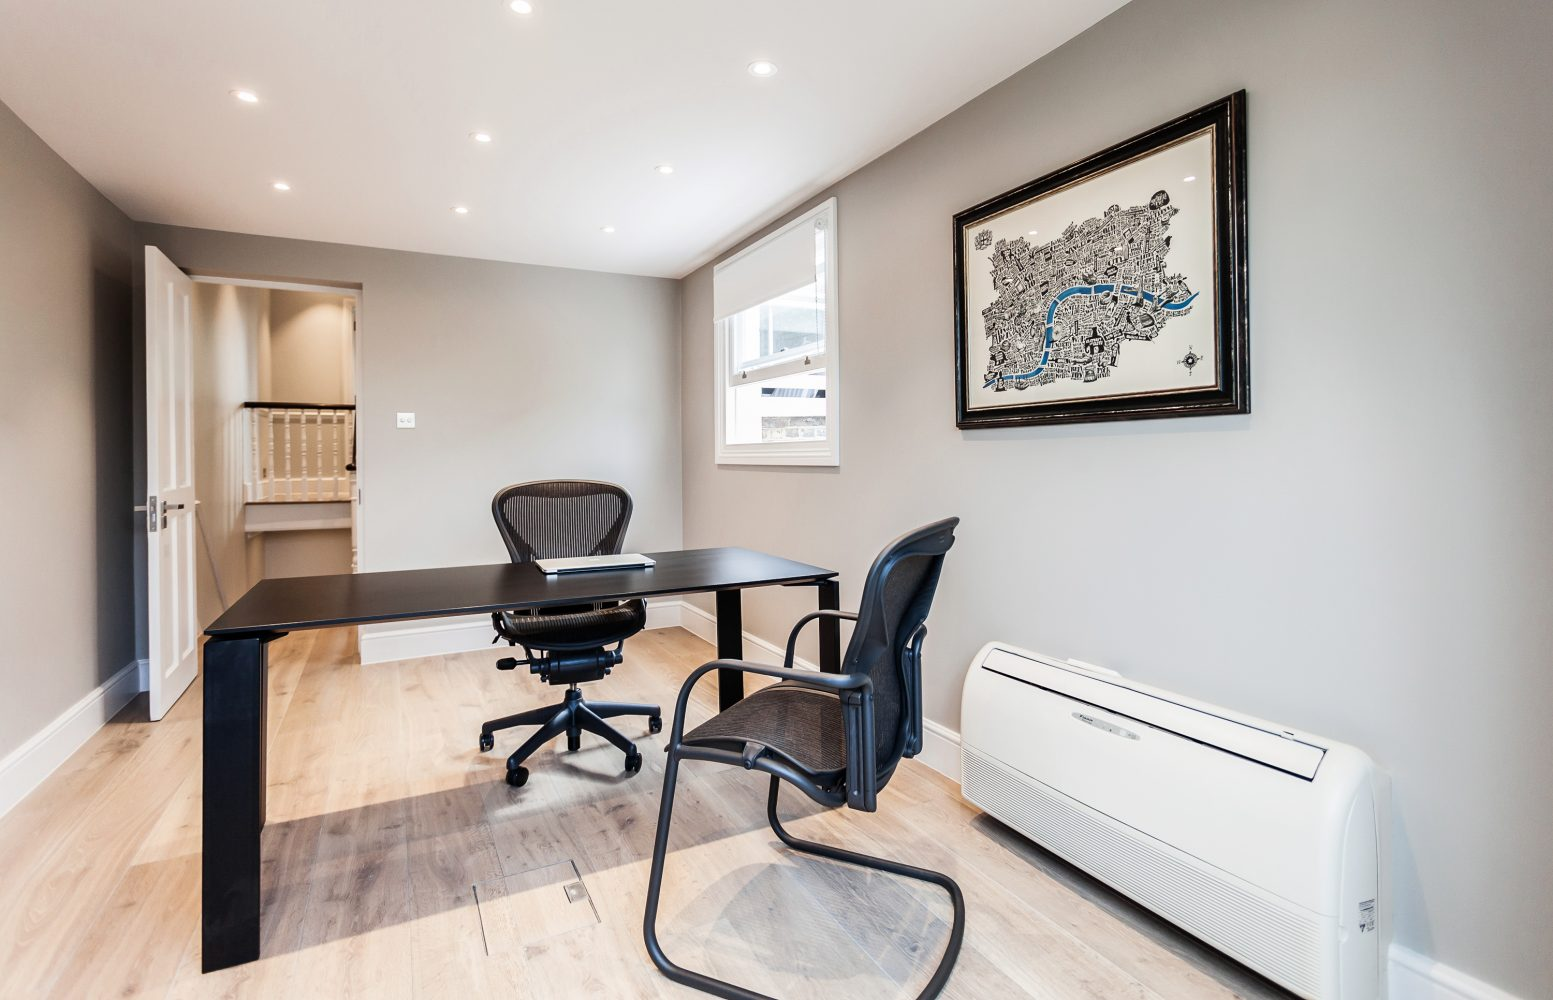 Painting and decorating services for spacious home office in Chelsea, London- home office with white painted walls and ceiling